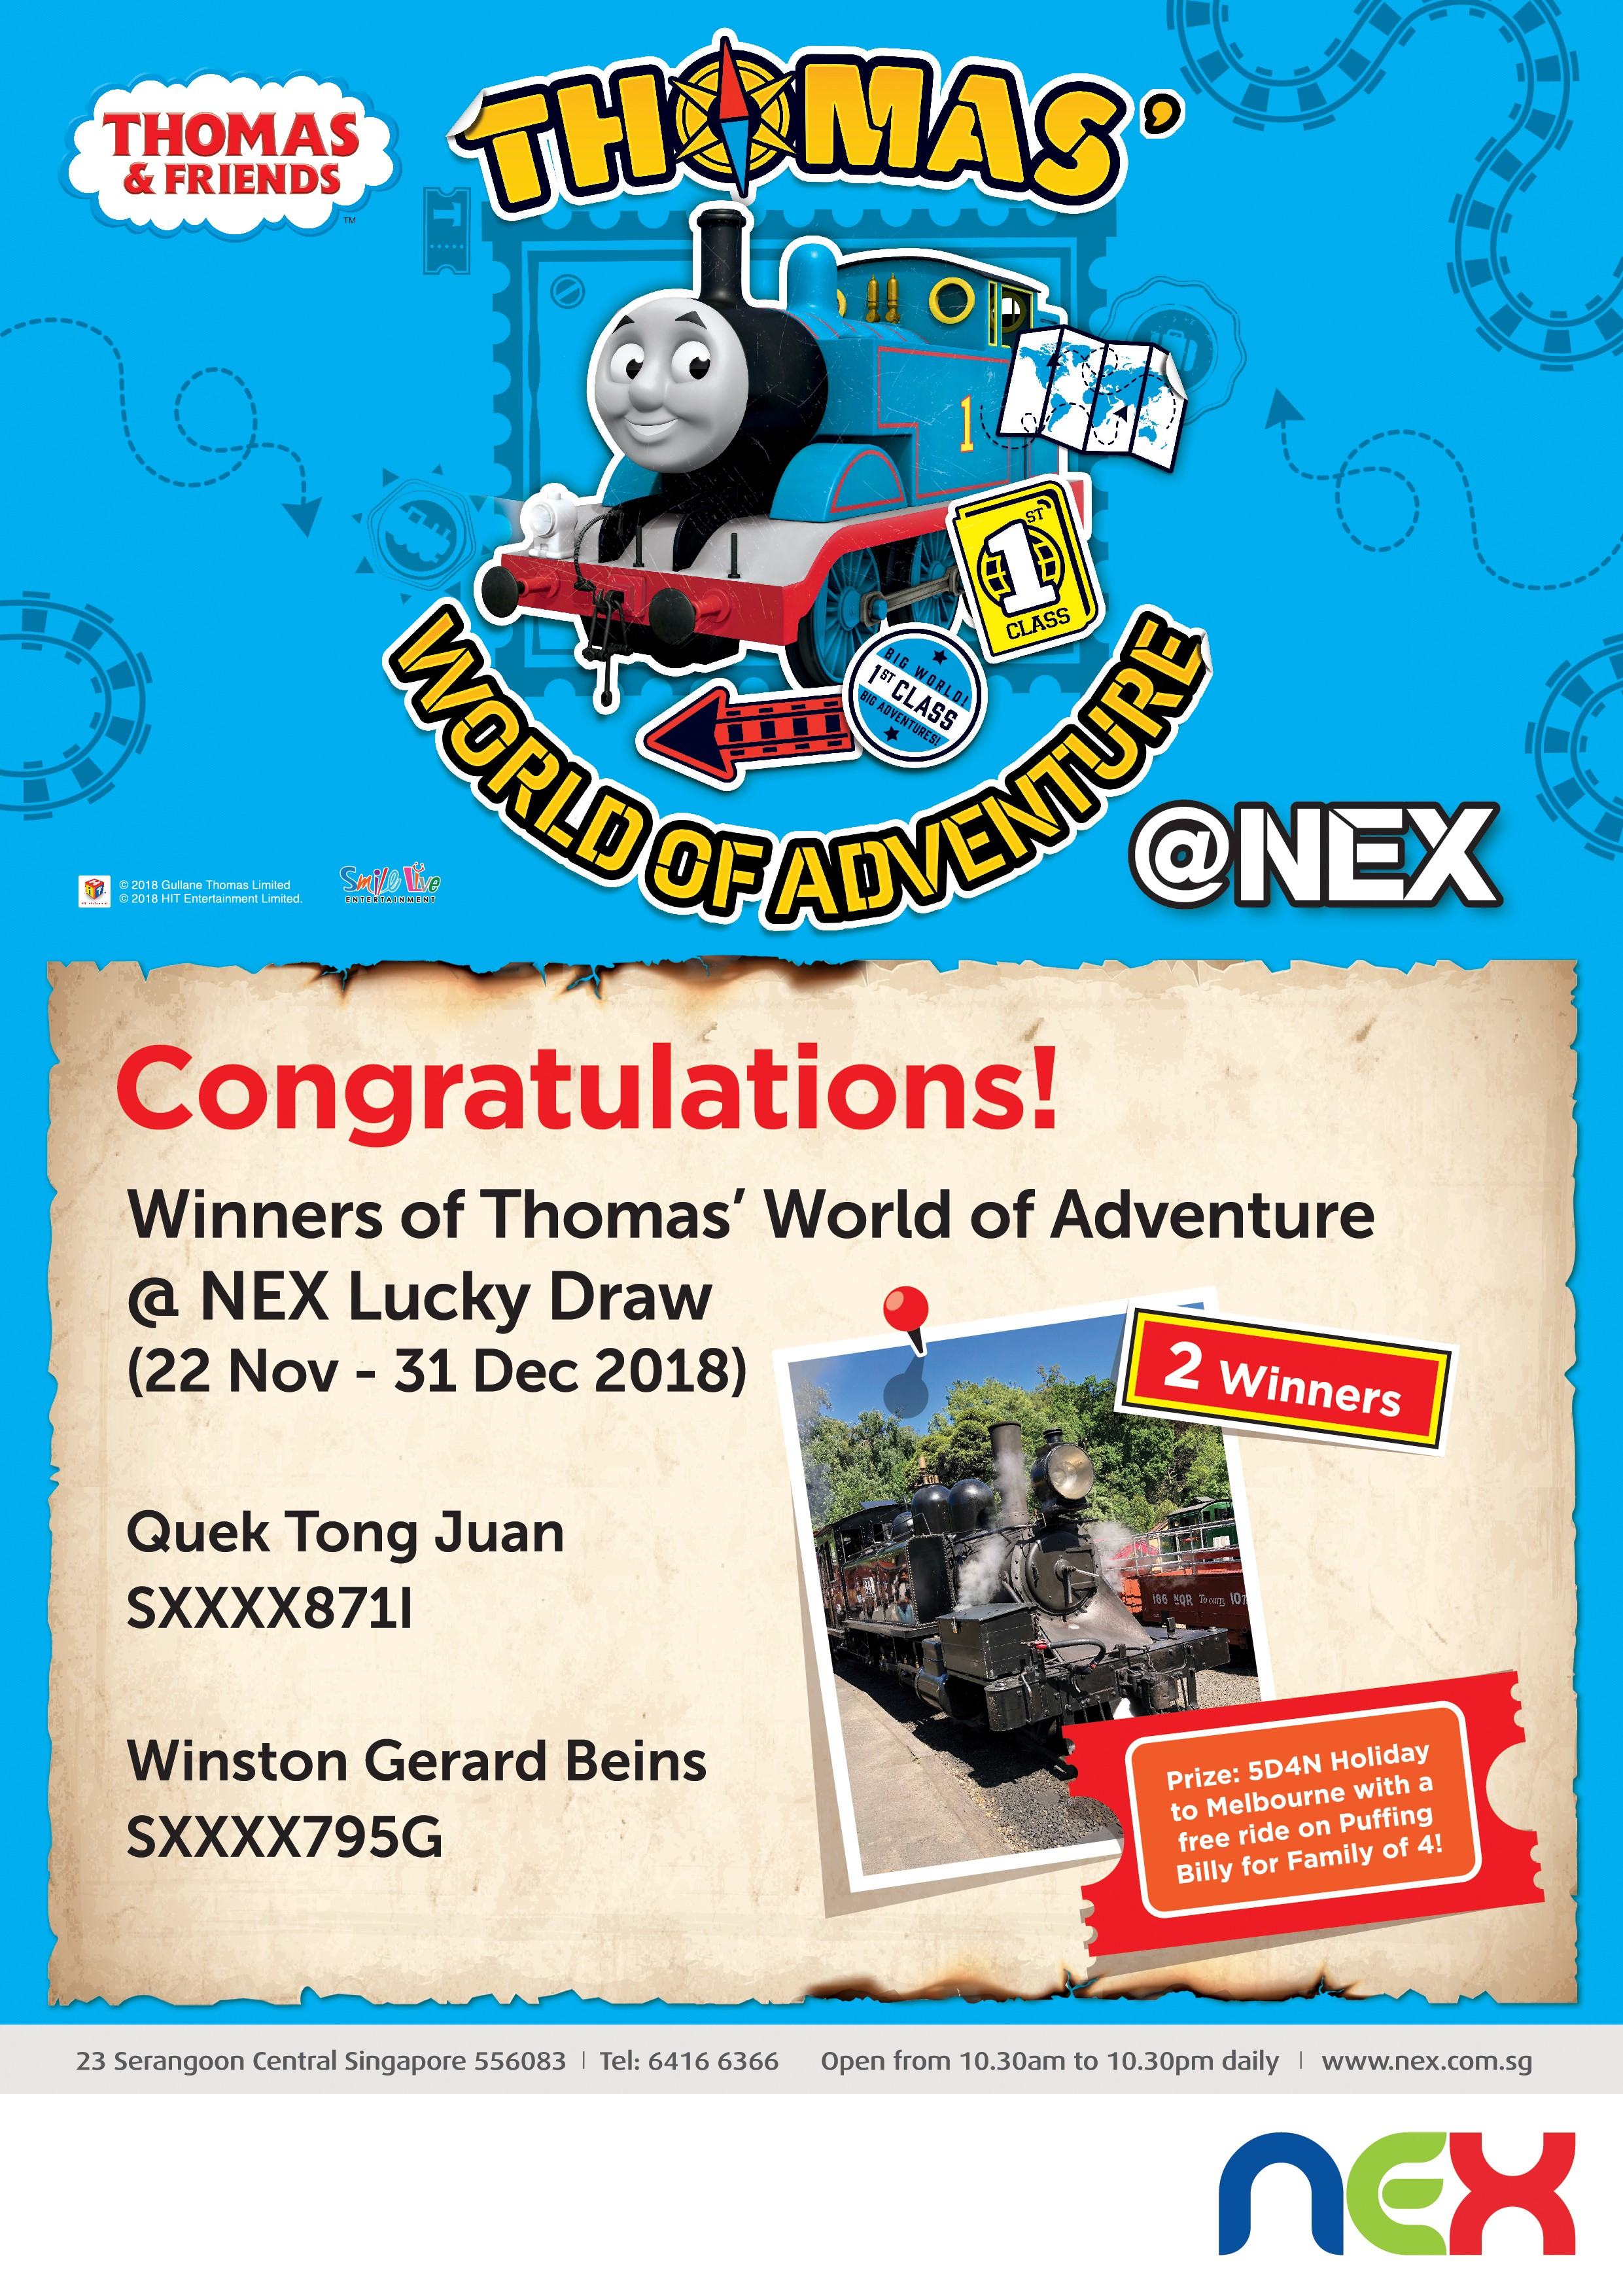 Thomas' World of Adventure @ NEX 2018 Lucky Draw Winner Result_FA-Hires